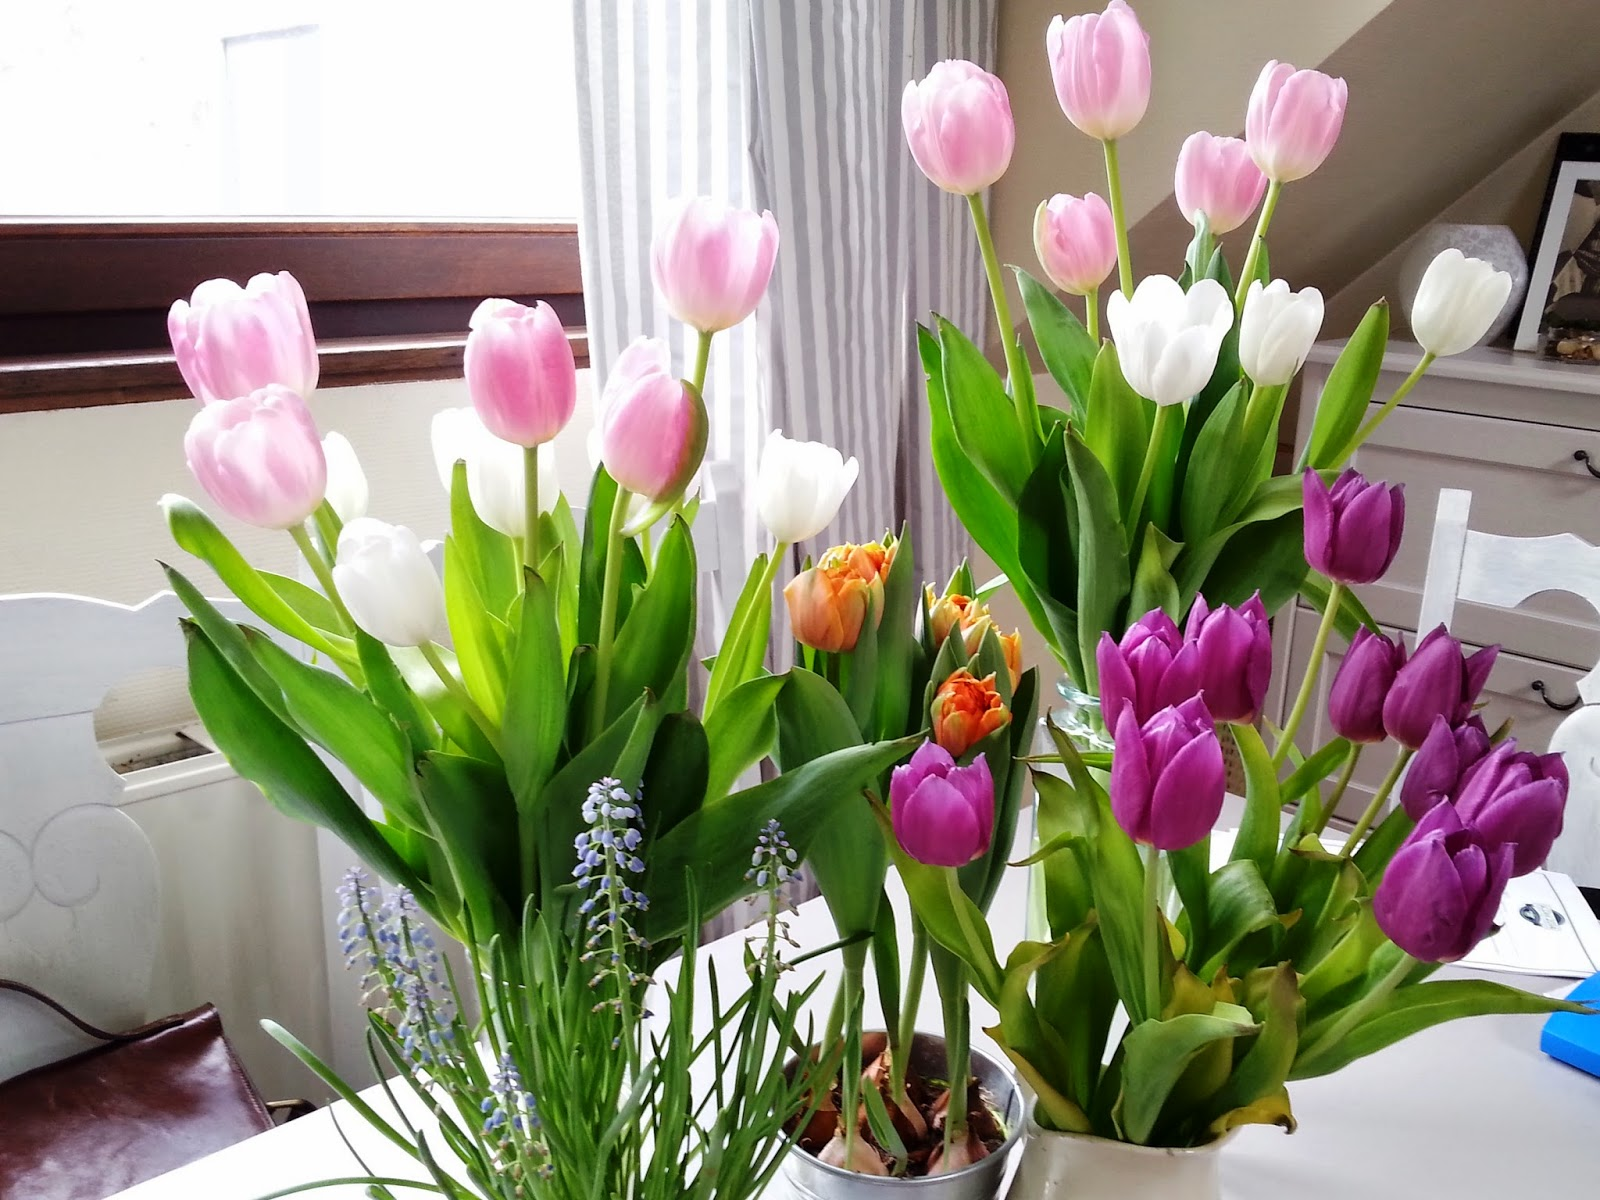 giulesss, blog, tulips, flowers, fashion, home decor, pink, tulipani, shabby chic